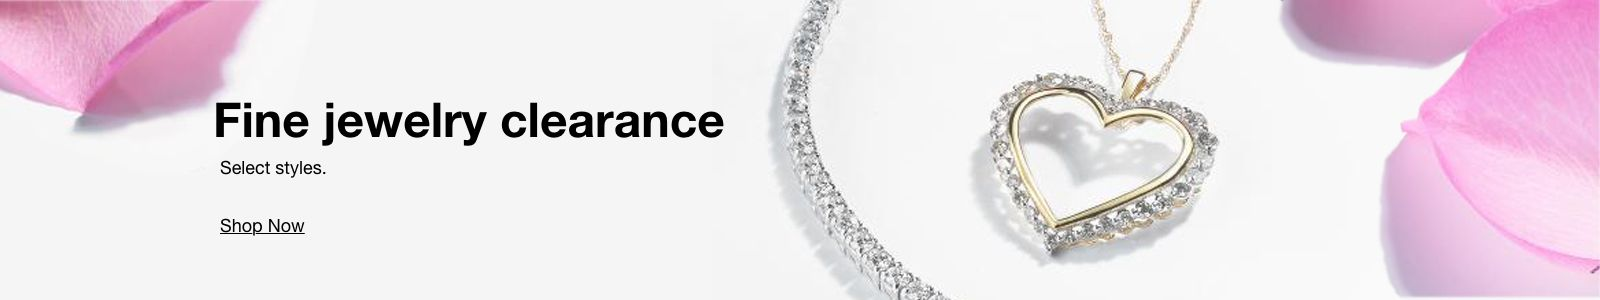 Fine Jewelry clearance, Select styles, Shop Now